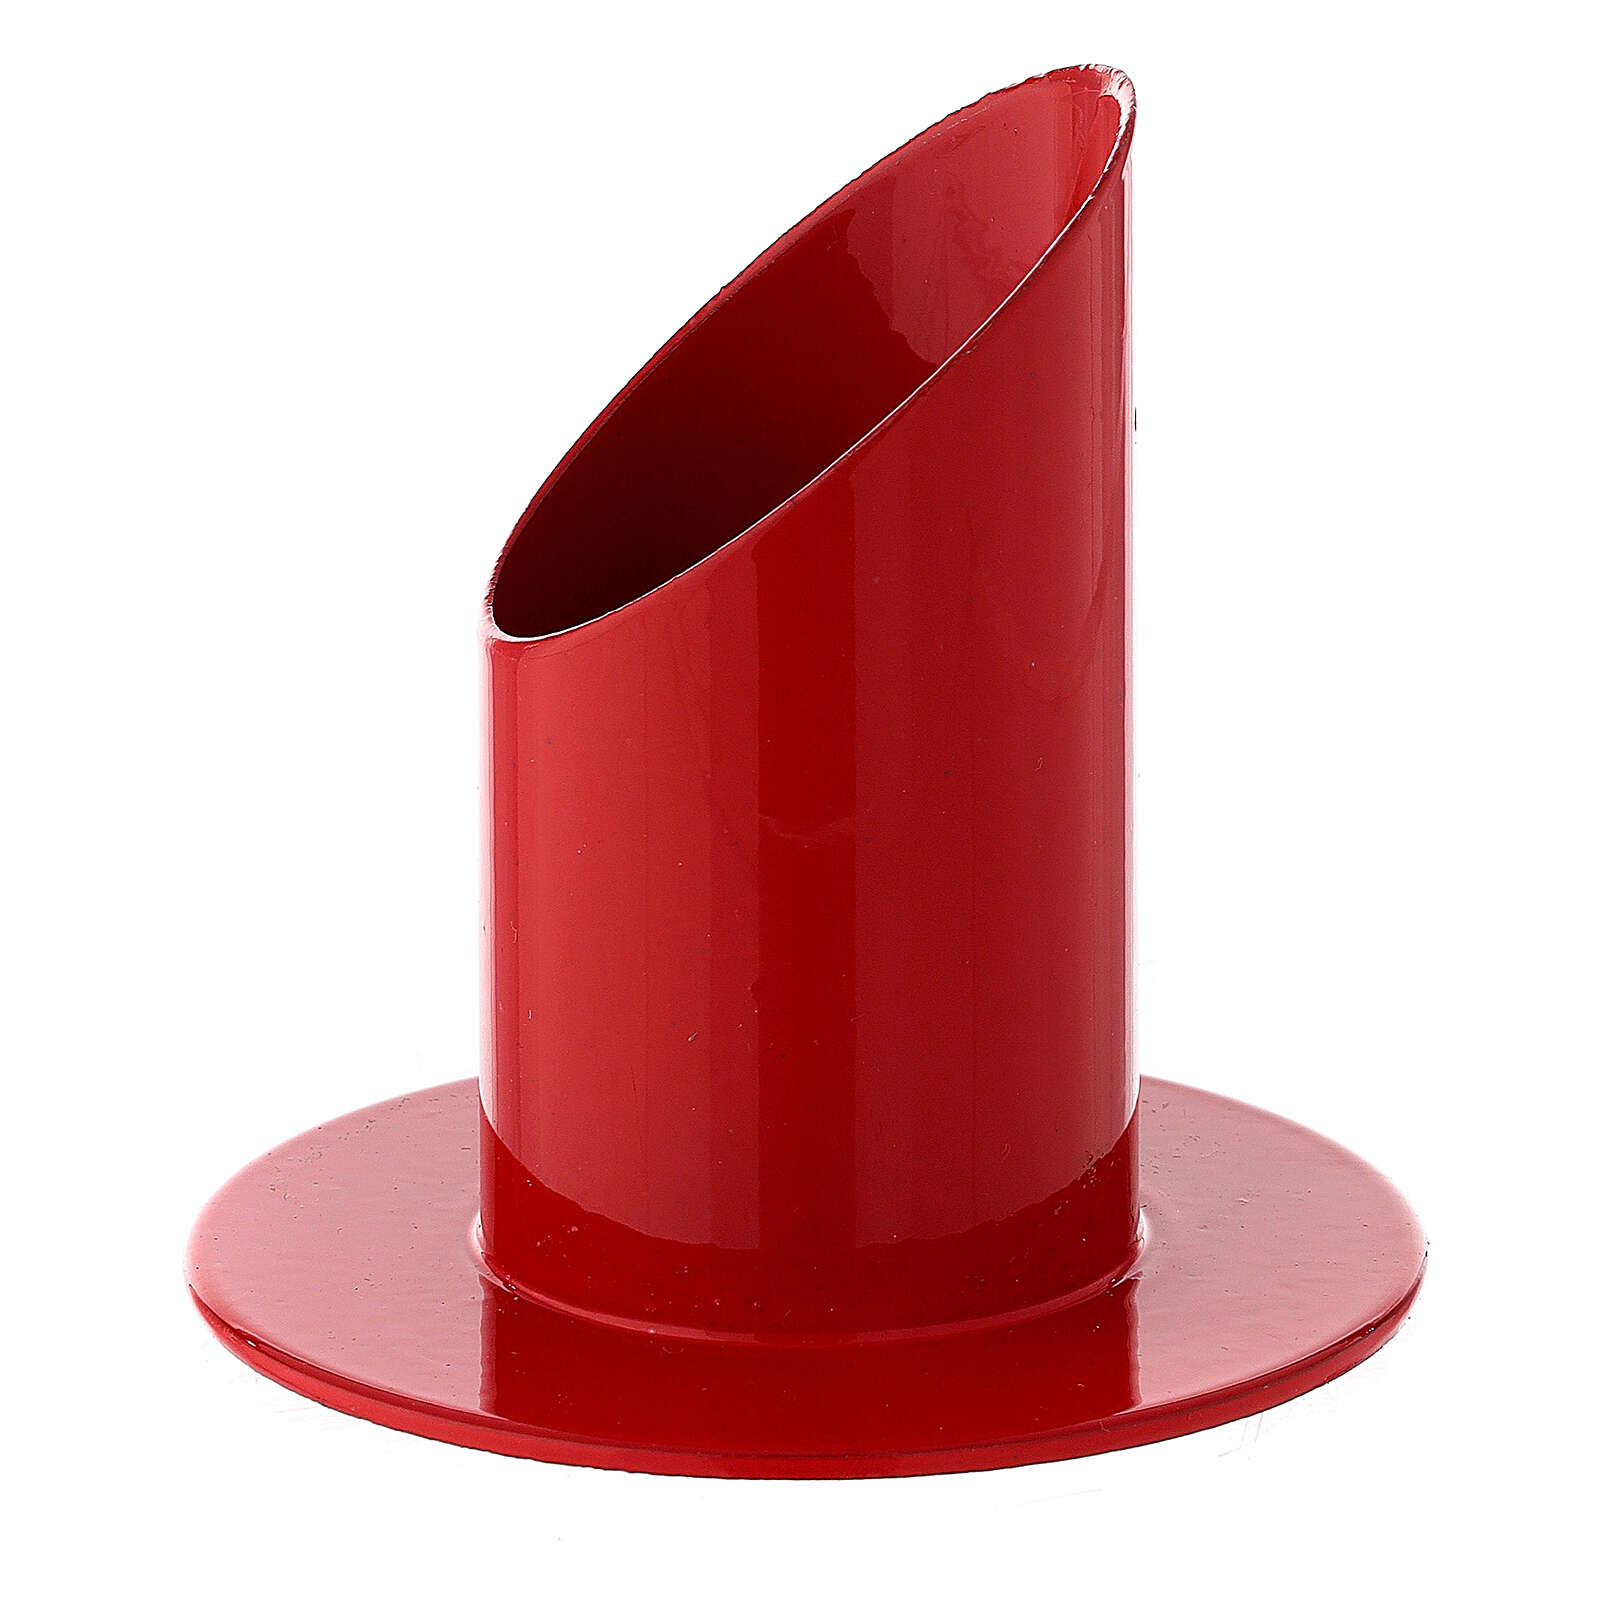 Red metal candle holder 1 1/2 in 3